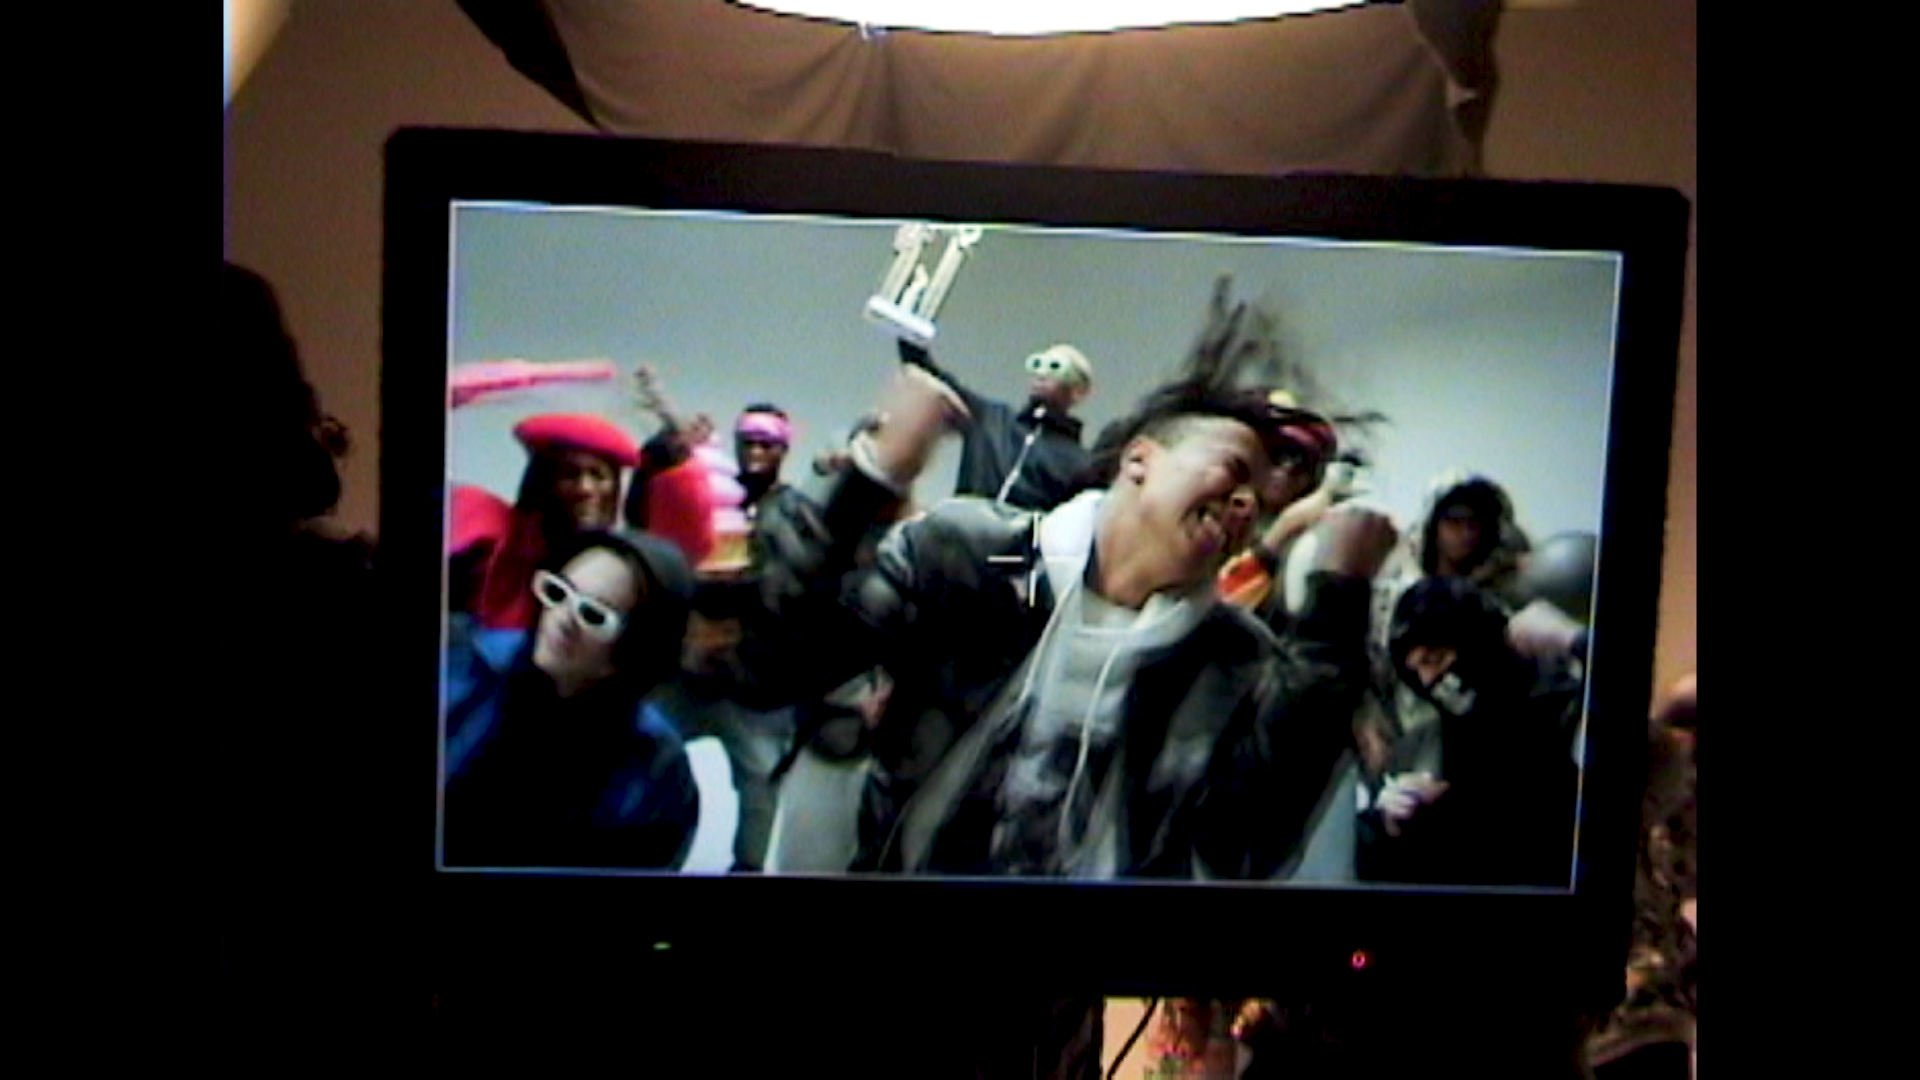 group of black people dancing with rapper Zach Zoya in the middle for music video Who Dat filmed by Les Gamins